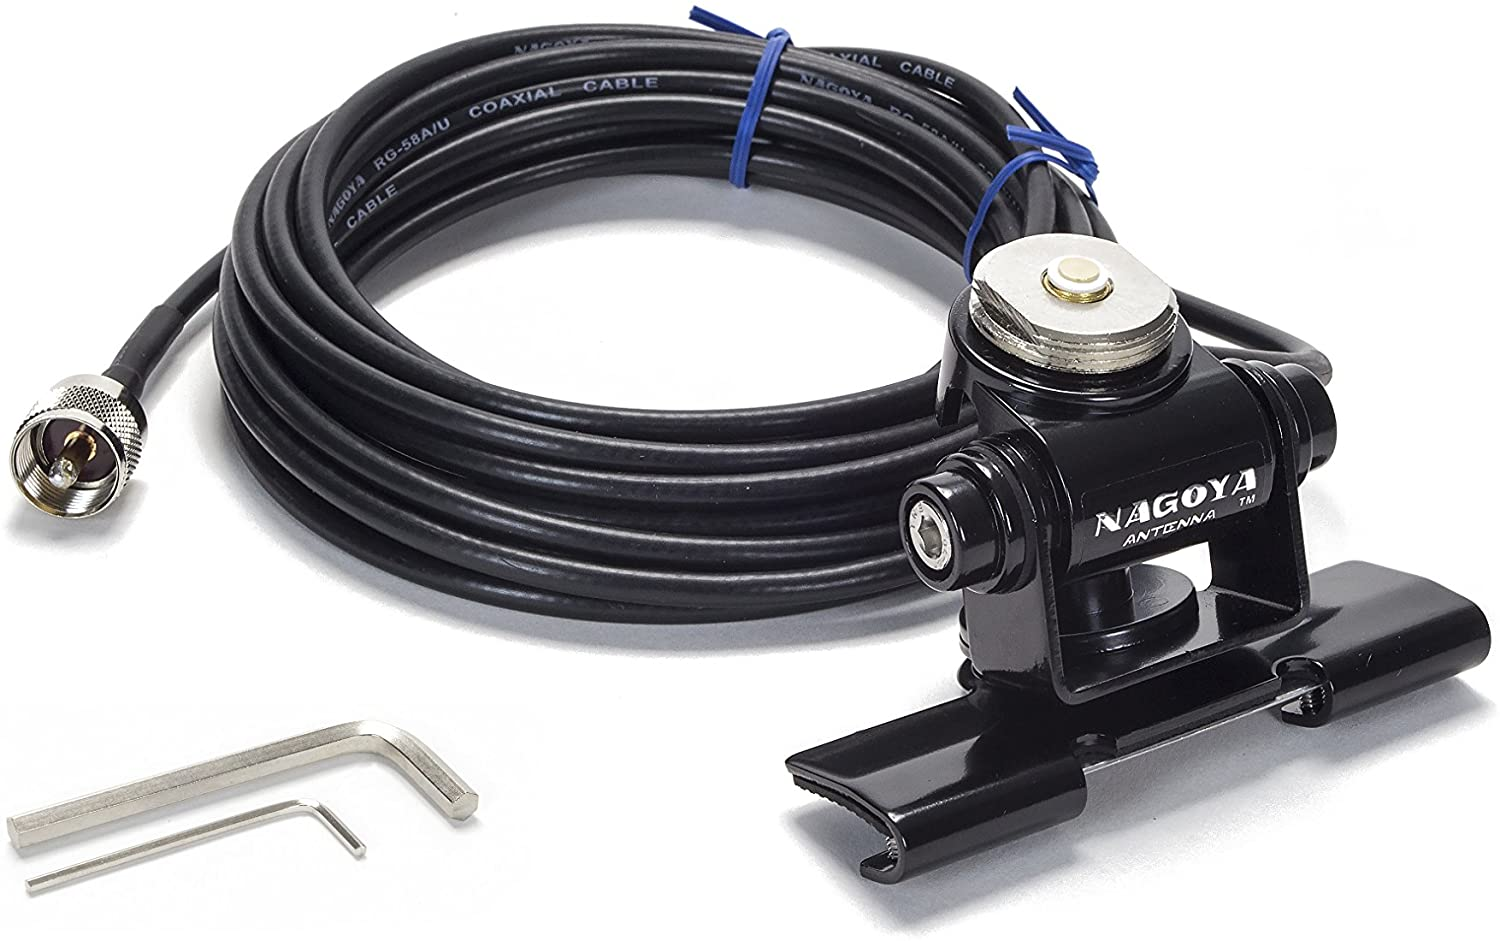 Nagoya RB-700N Heavy Duty Universal NMO Lip Mount for Trucks, Hatchbacks, SUVs, and Cars (Multi Axis Adjustable); Includes 20' of RG-58A/U Cable with a PL-259 Connector (Includes Rain Cap)